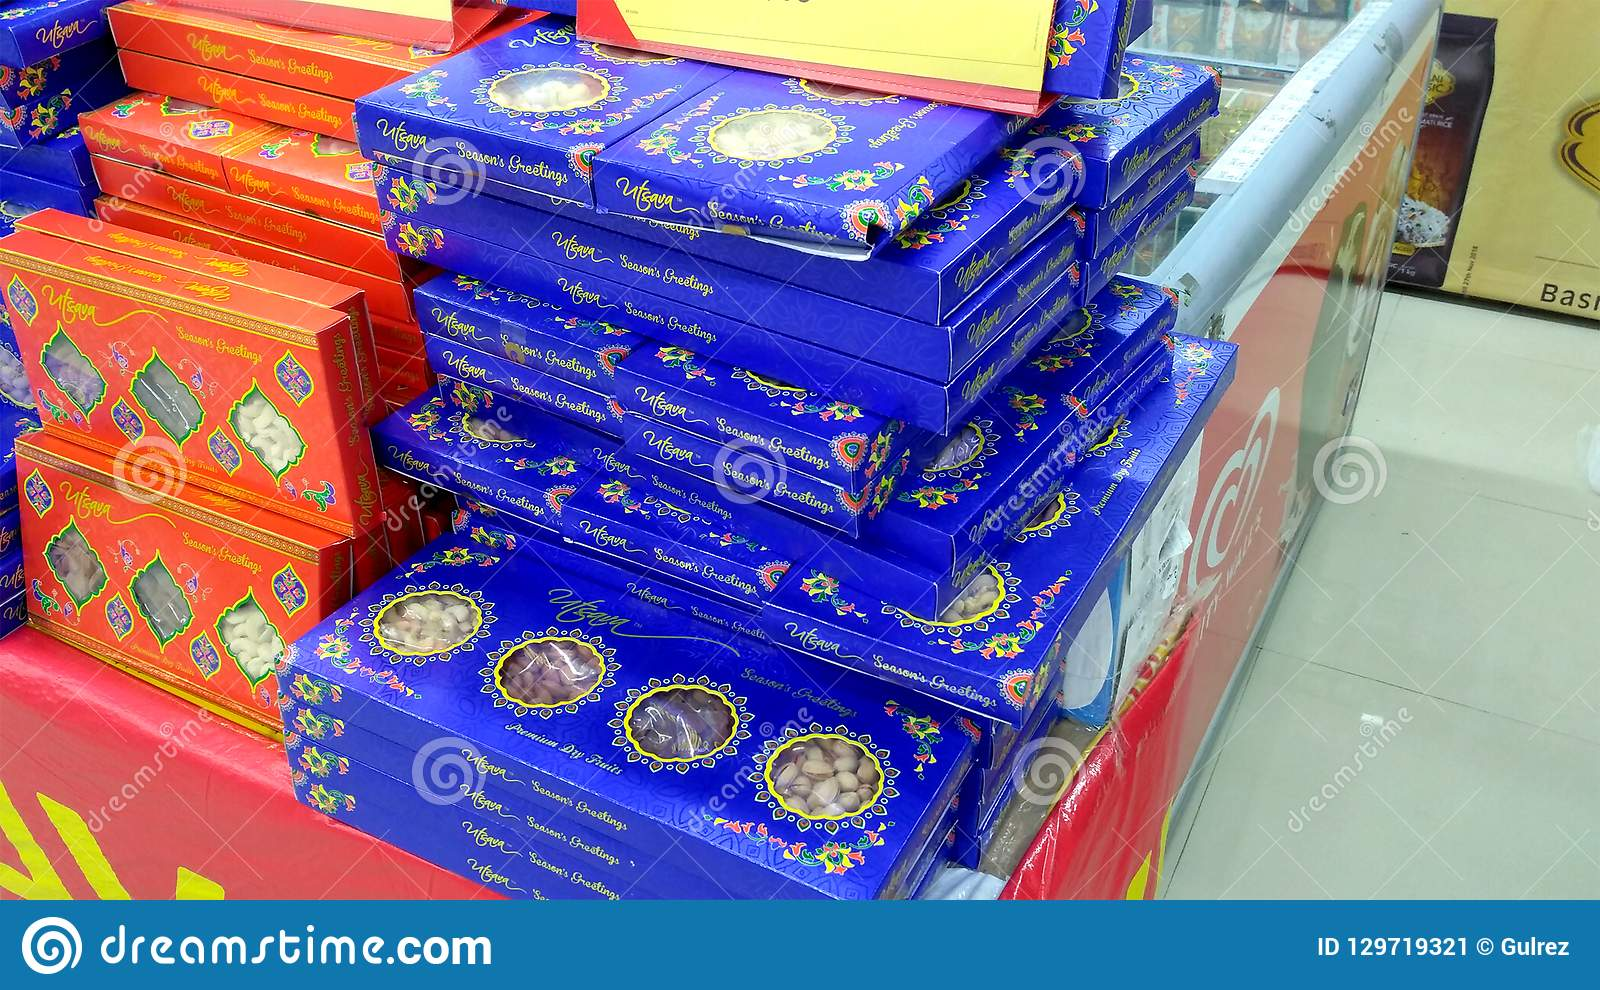 Diwali Sweets Packets in Super Market